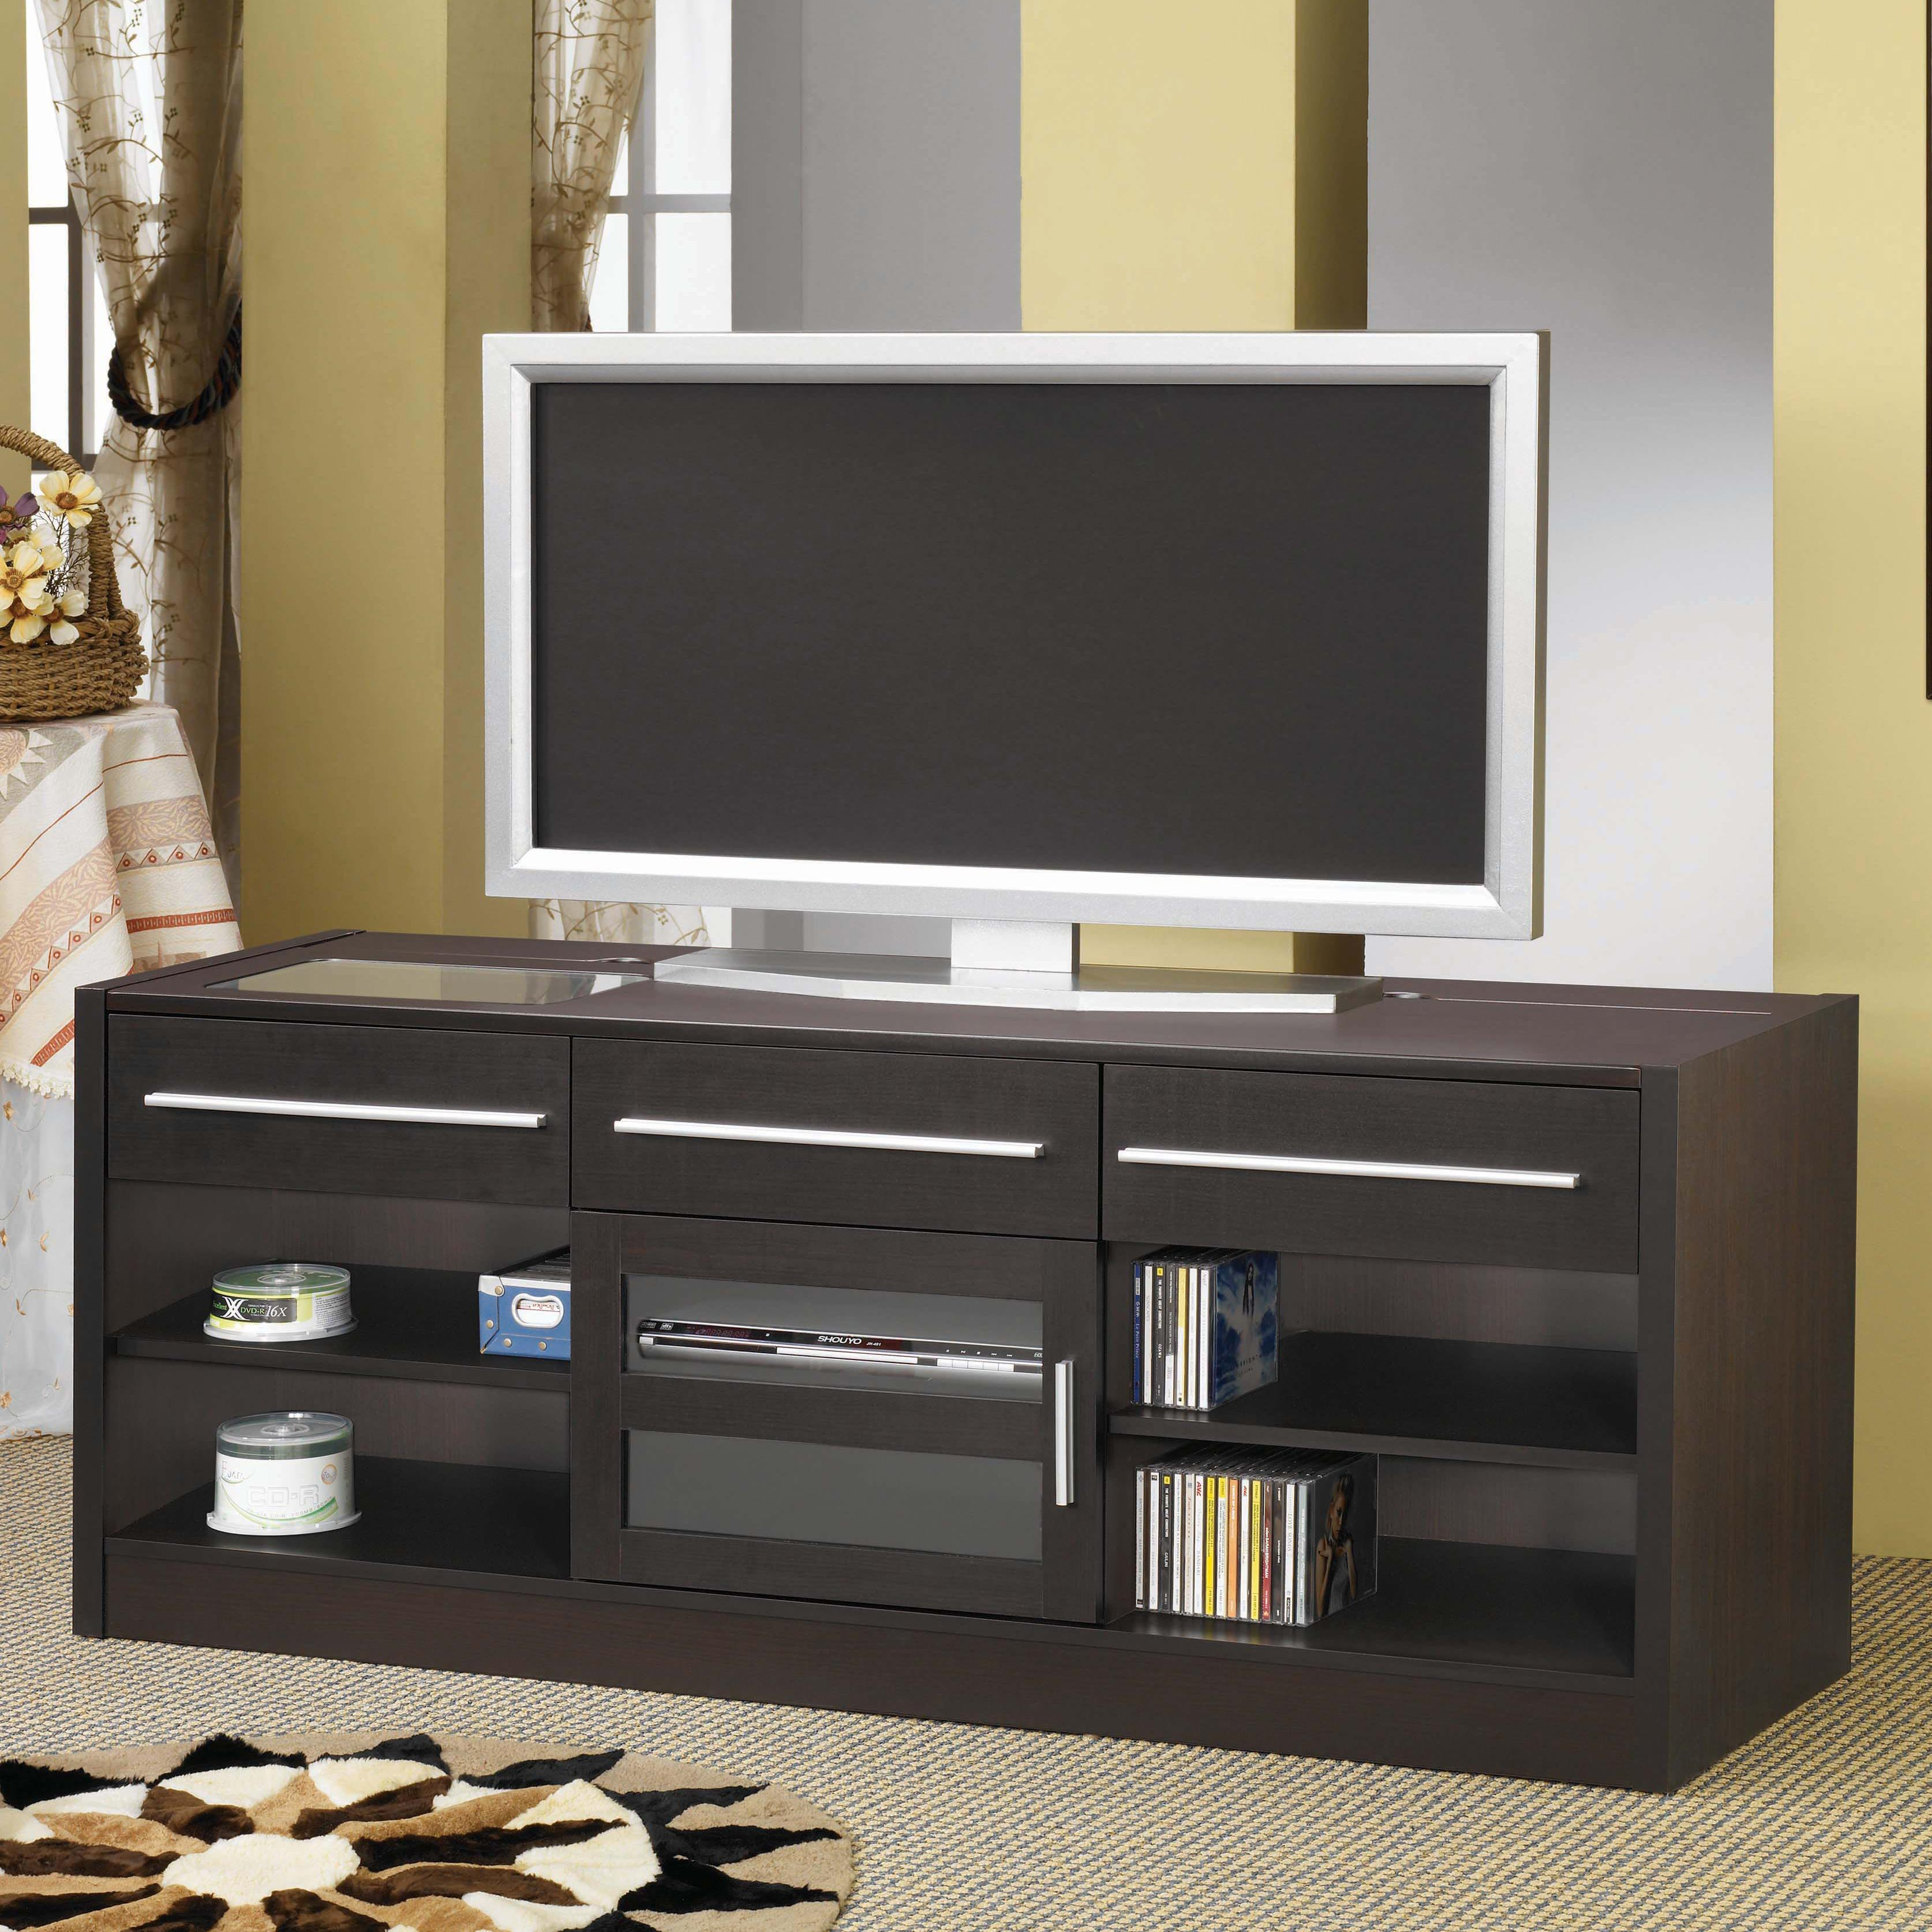 Tv stands contemporary tv console with connect-it power drawer-rta